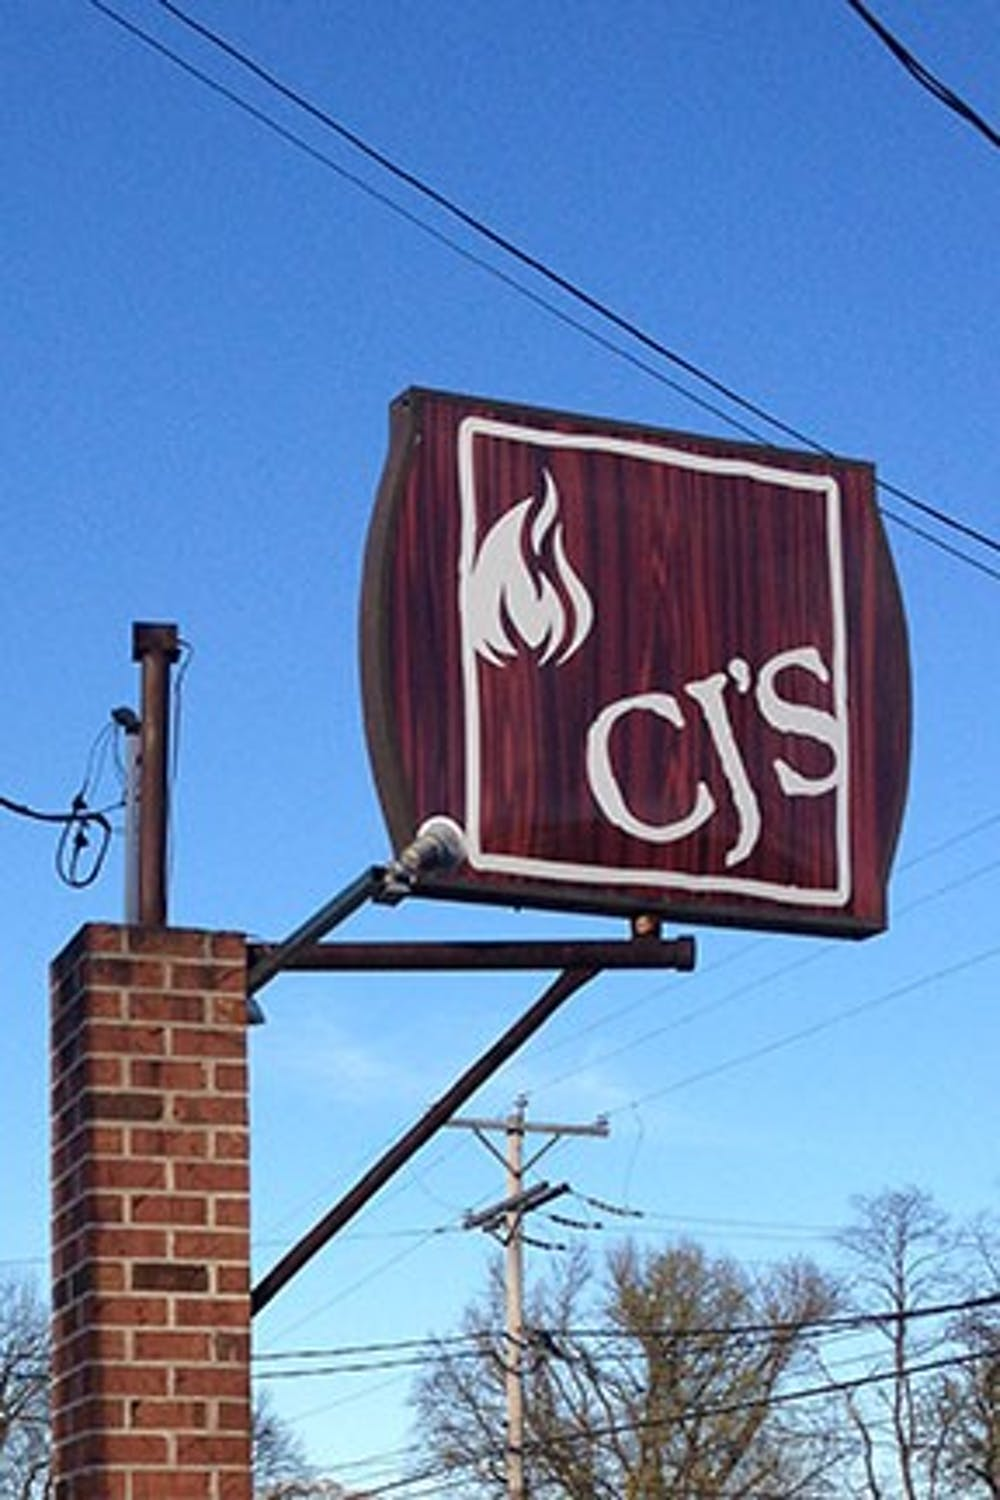 CJ's brings upscale dining to Shippensburg